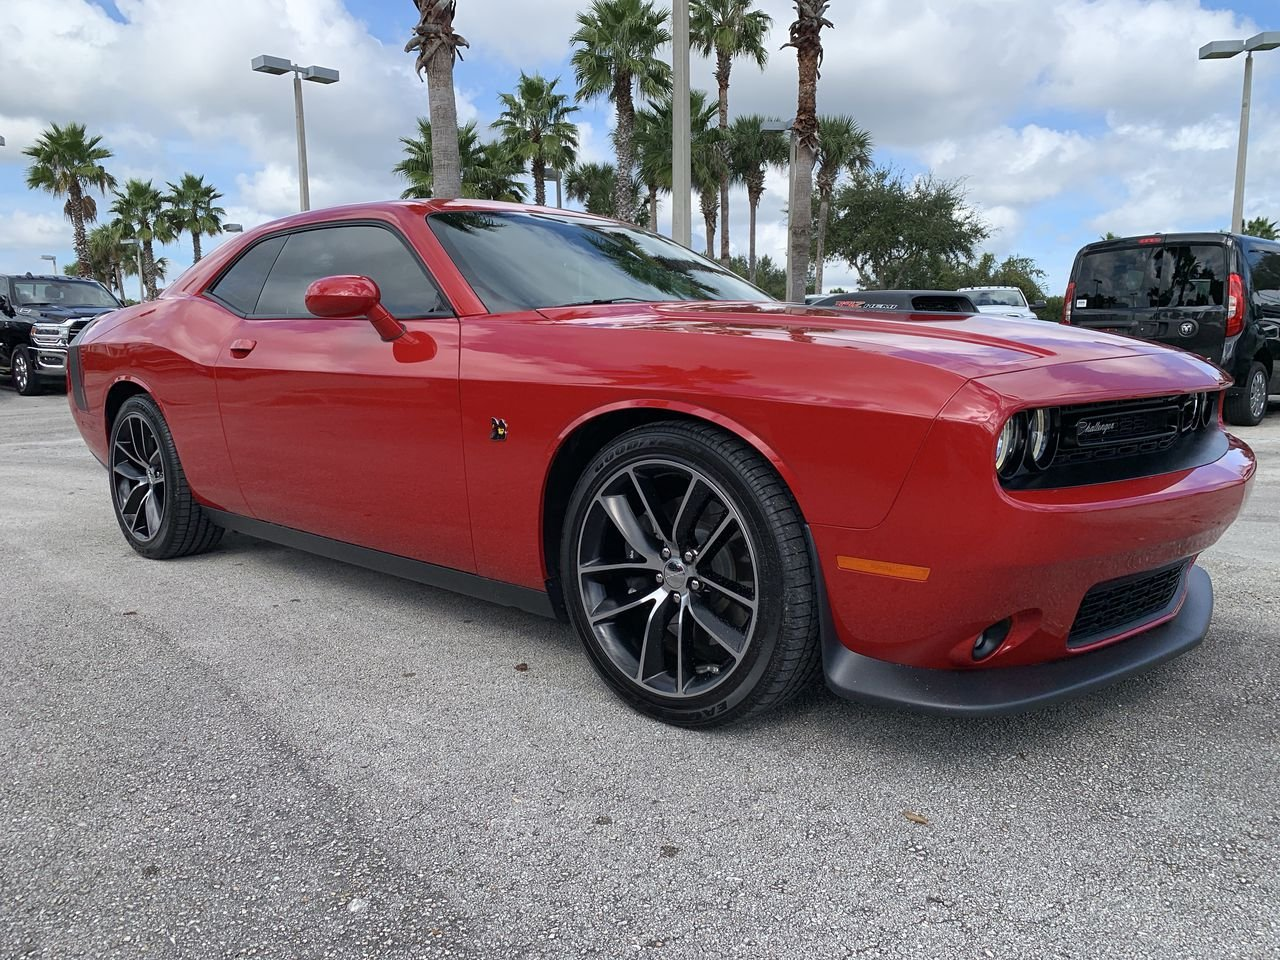 Certified Pre-Owned 2016 Dodge Challenger 392 Hemi Scat Pack Shaker